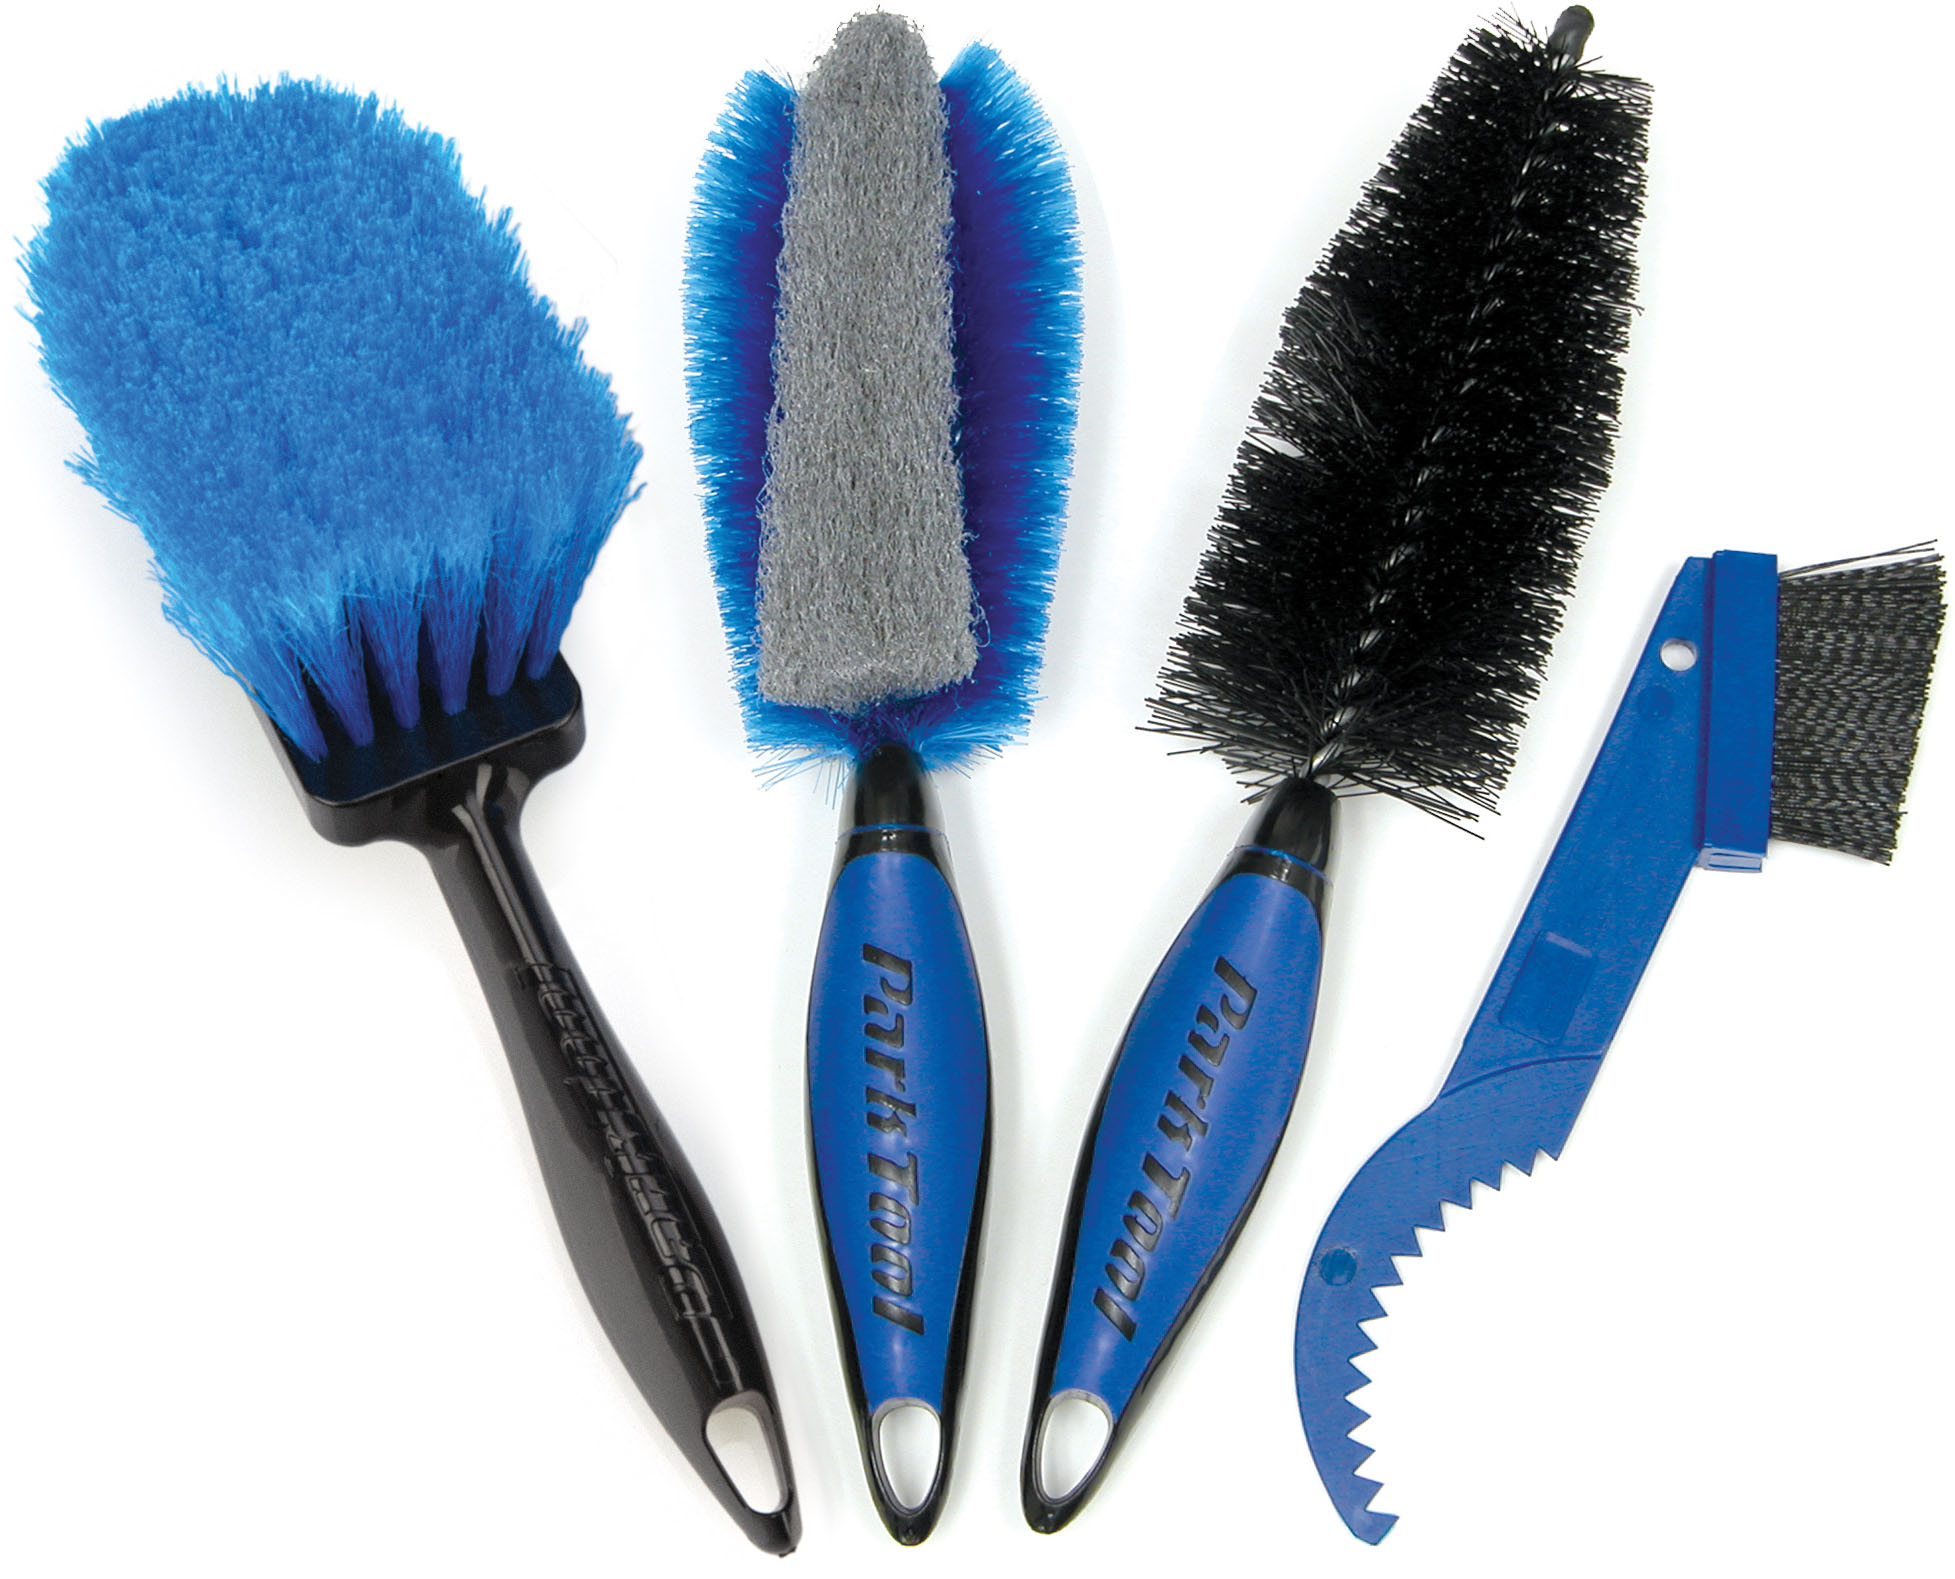 Park Tool Bike Cleaning Brush Set BCB4.2 | Brushes and sponges